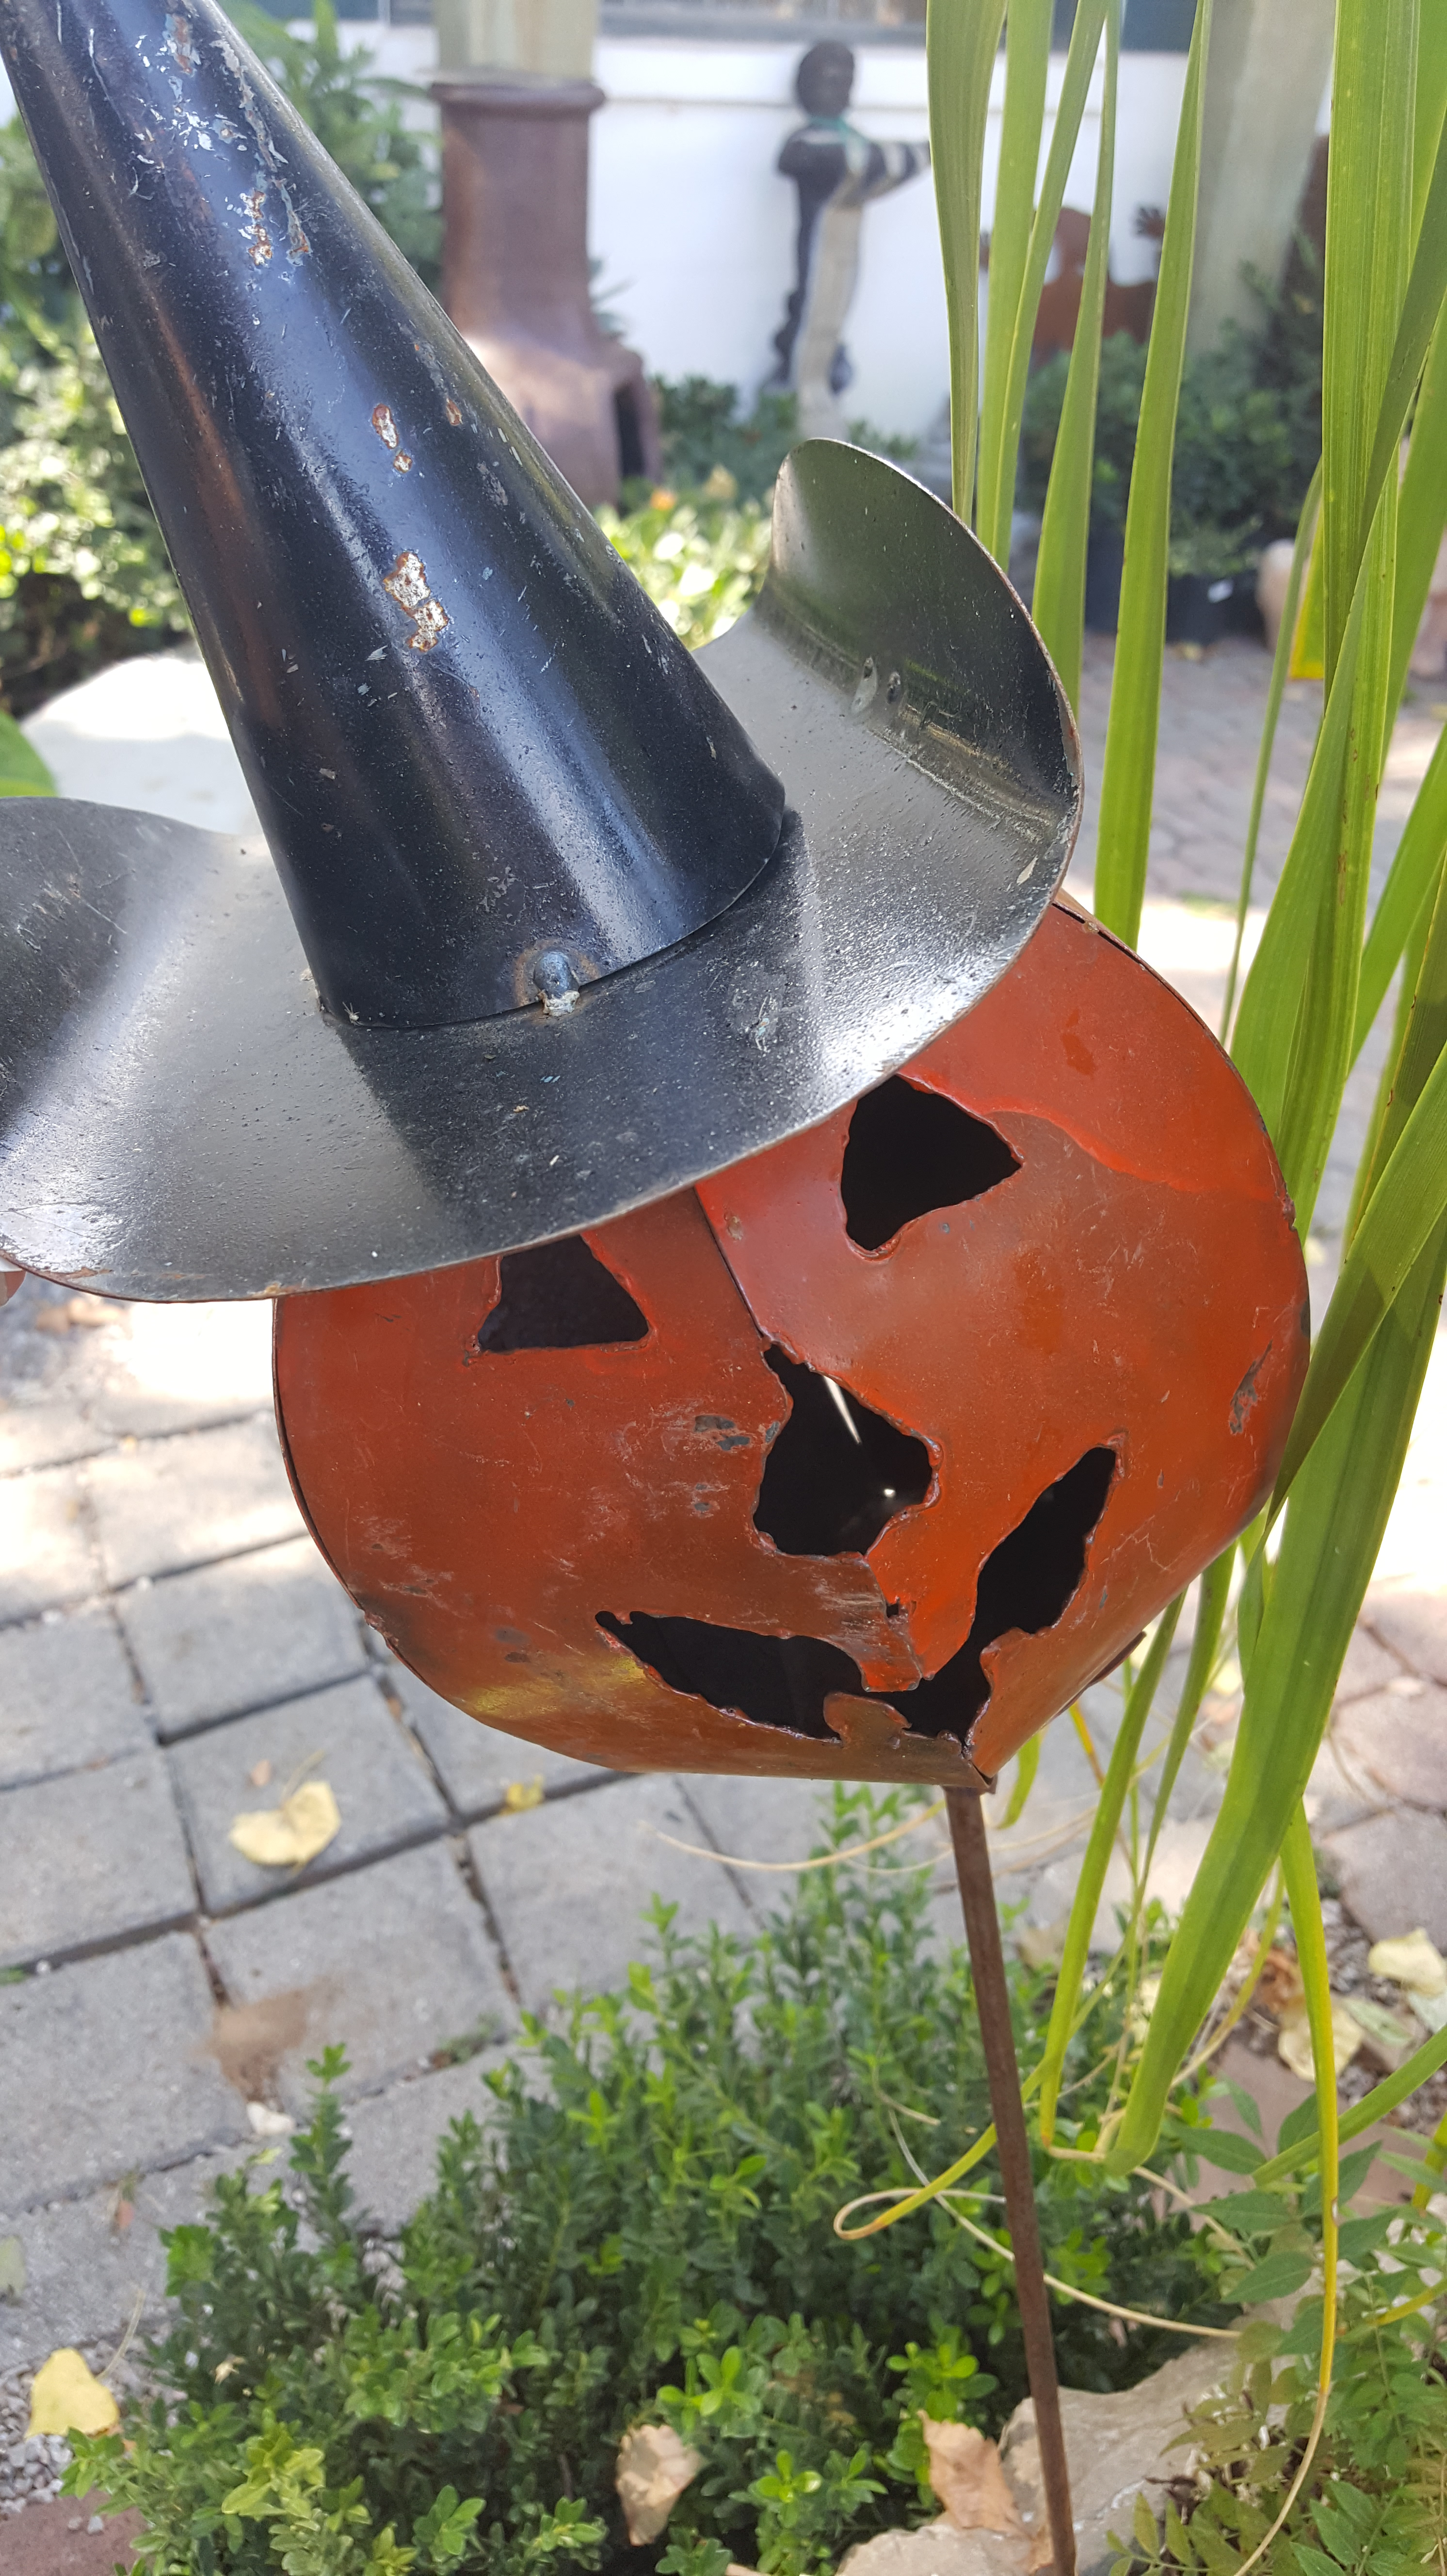 20160913_143235 - Fall Decorations For Sale